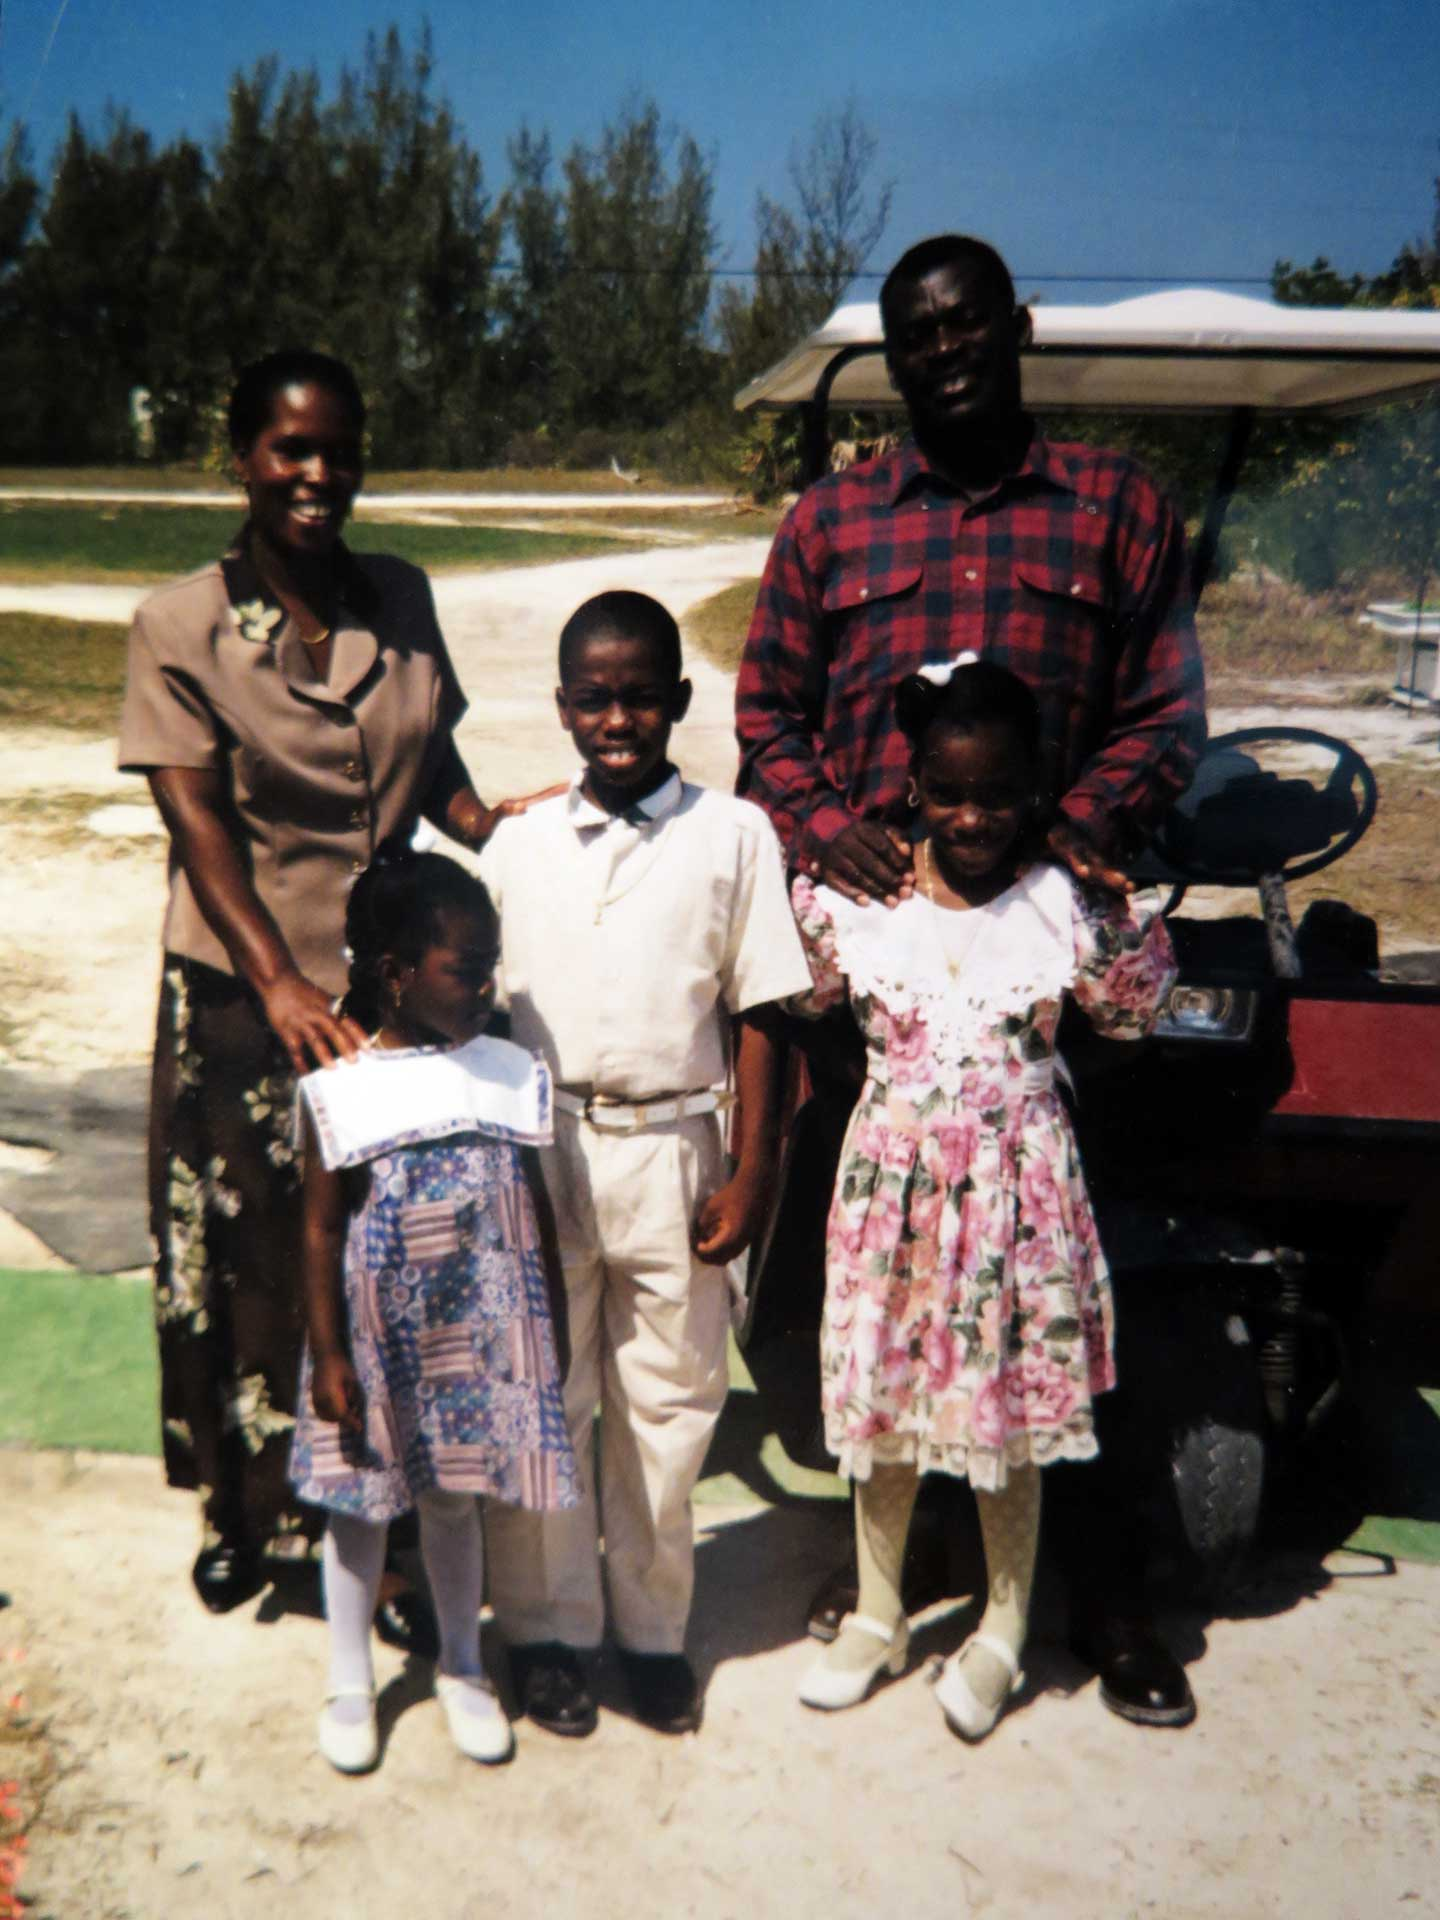 GuerrierFamily-Image002